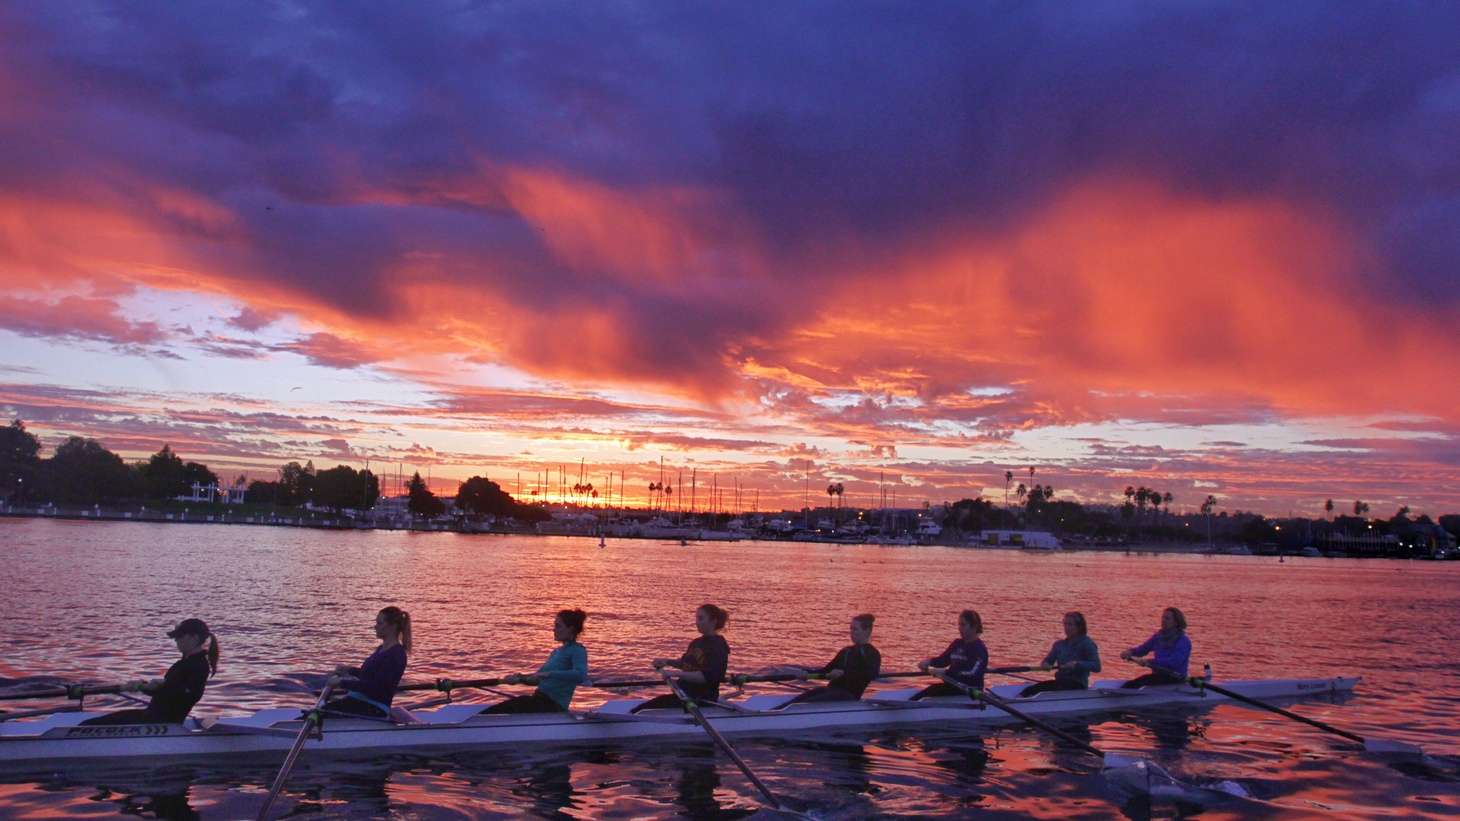 Erica Swensson says rowing is the most painful kind of endurance sport you can do.